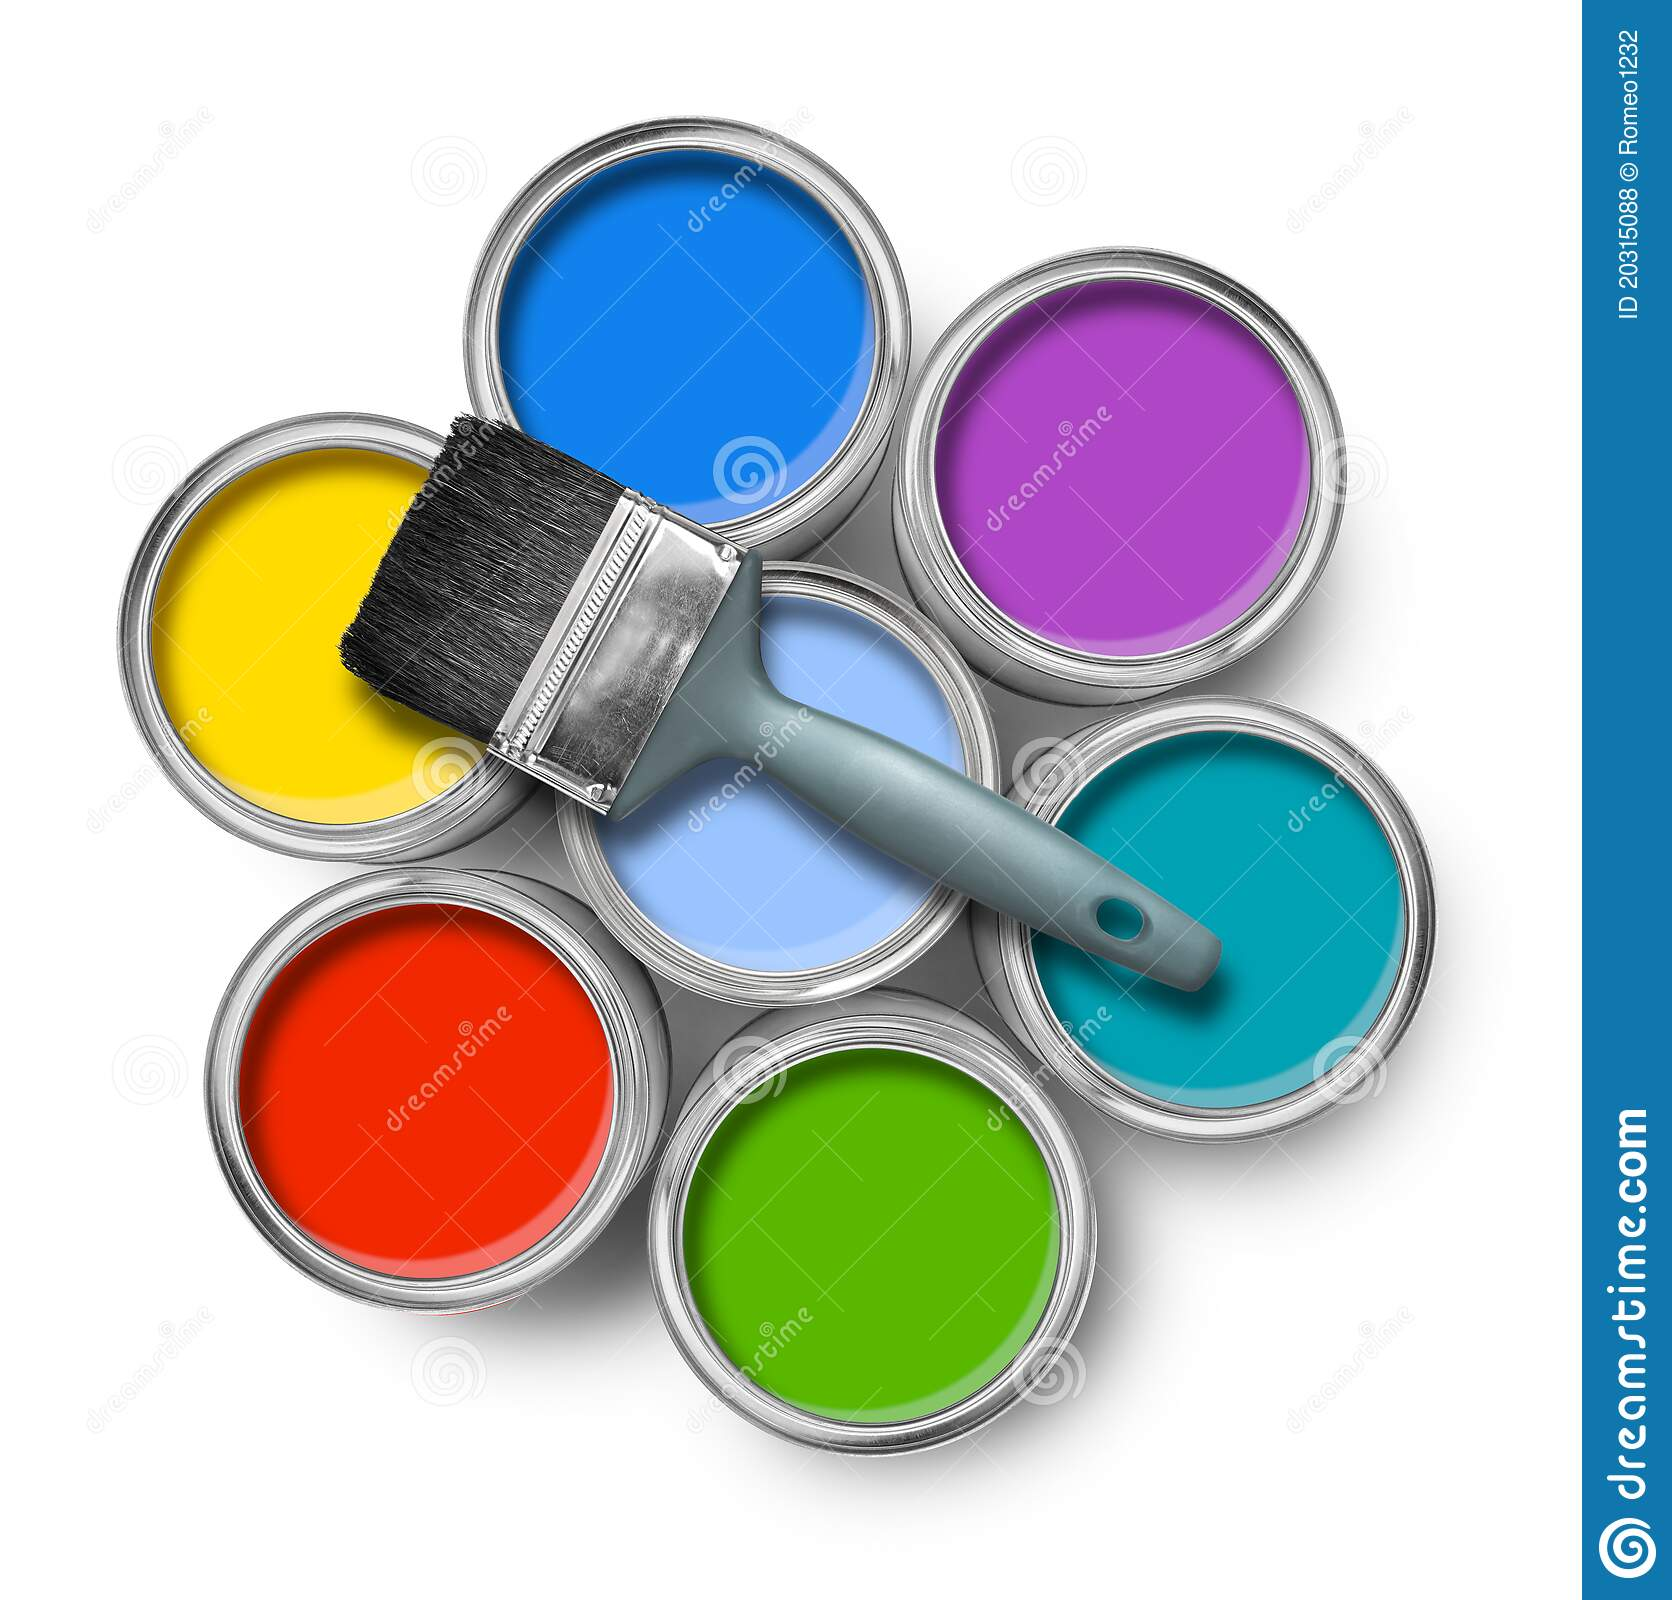 Https Www Dreamstime Com Royalty Free Stock Photos Color Paint Cans Brush Image20315088